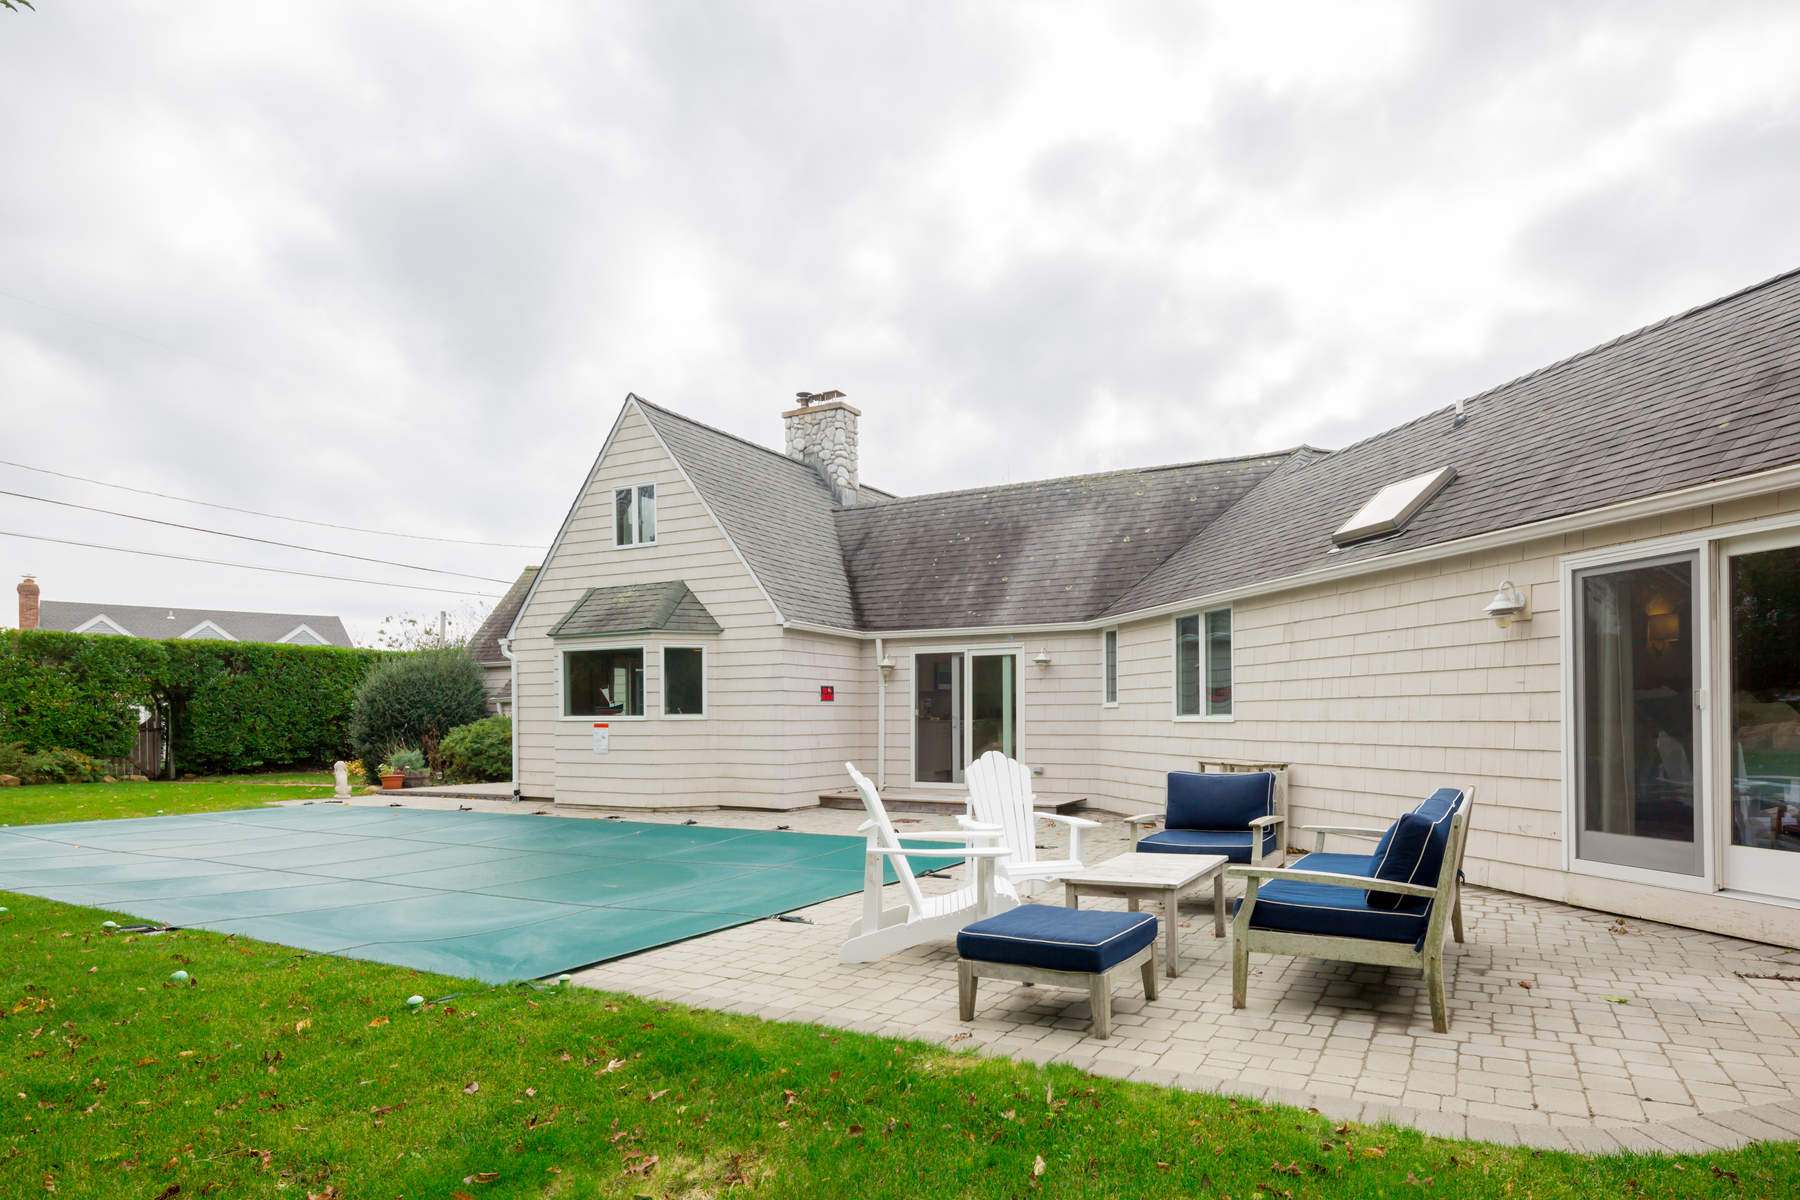 Single Family Home for Rent at Montauk Summer Oasis 23 South Delphi Street Montauk, New York 11954 United States